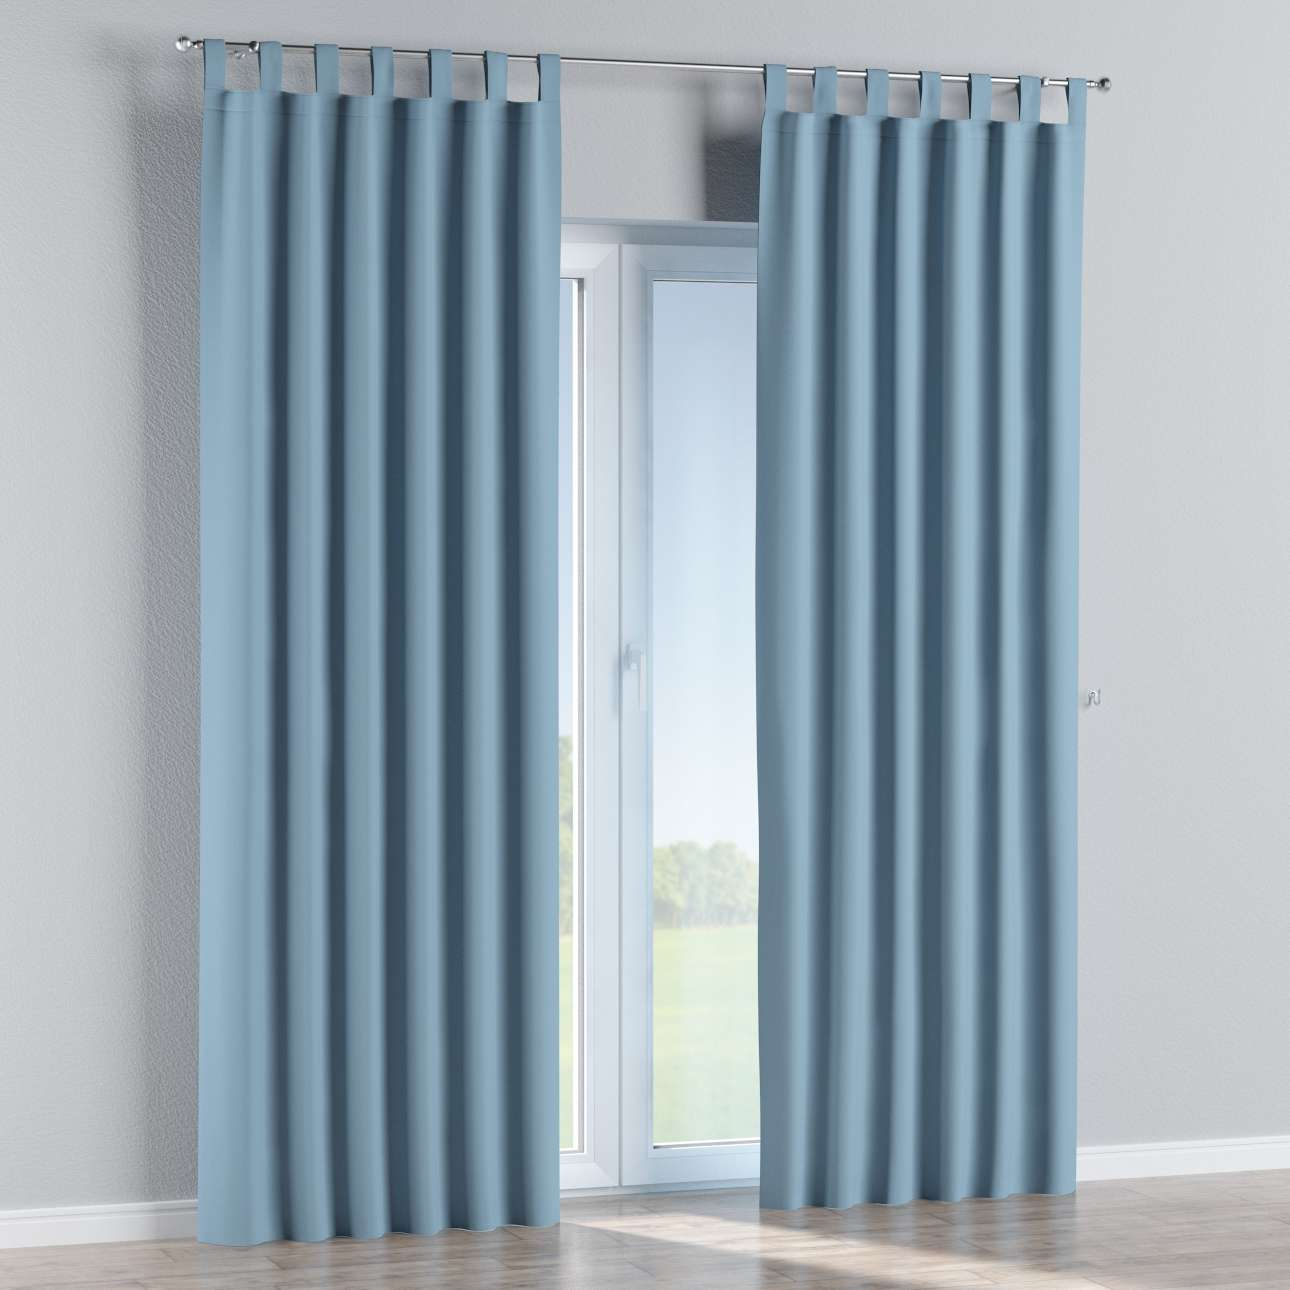 Blackout tab top curtains in collection Blackout, fabric: 269-08